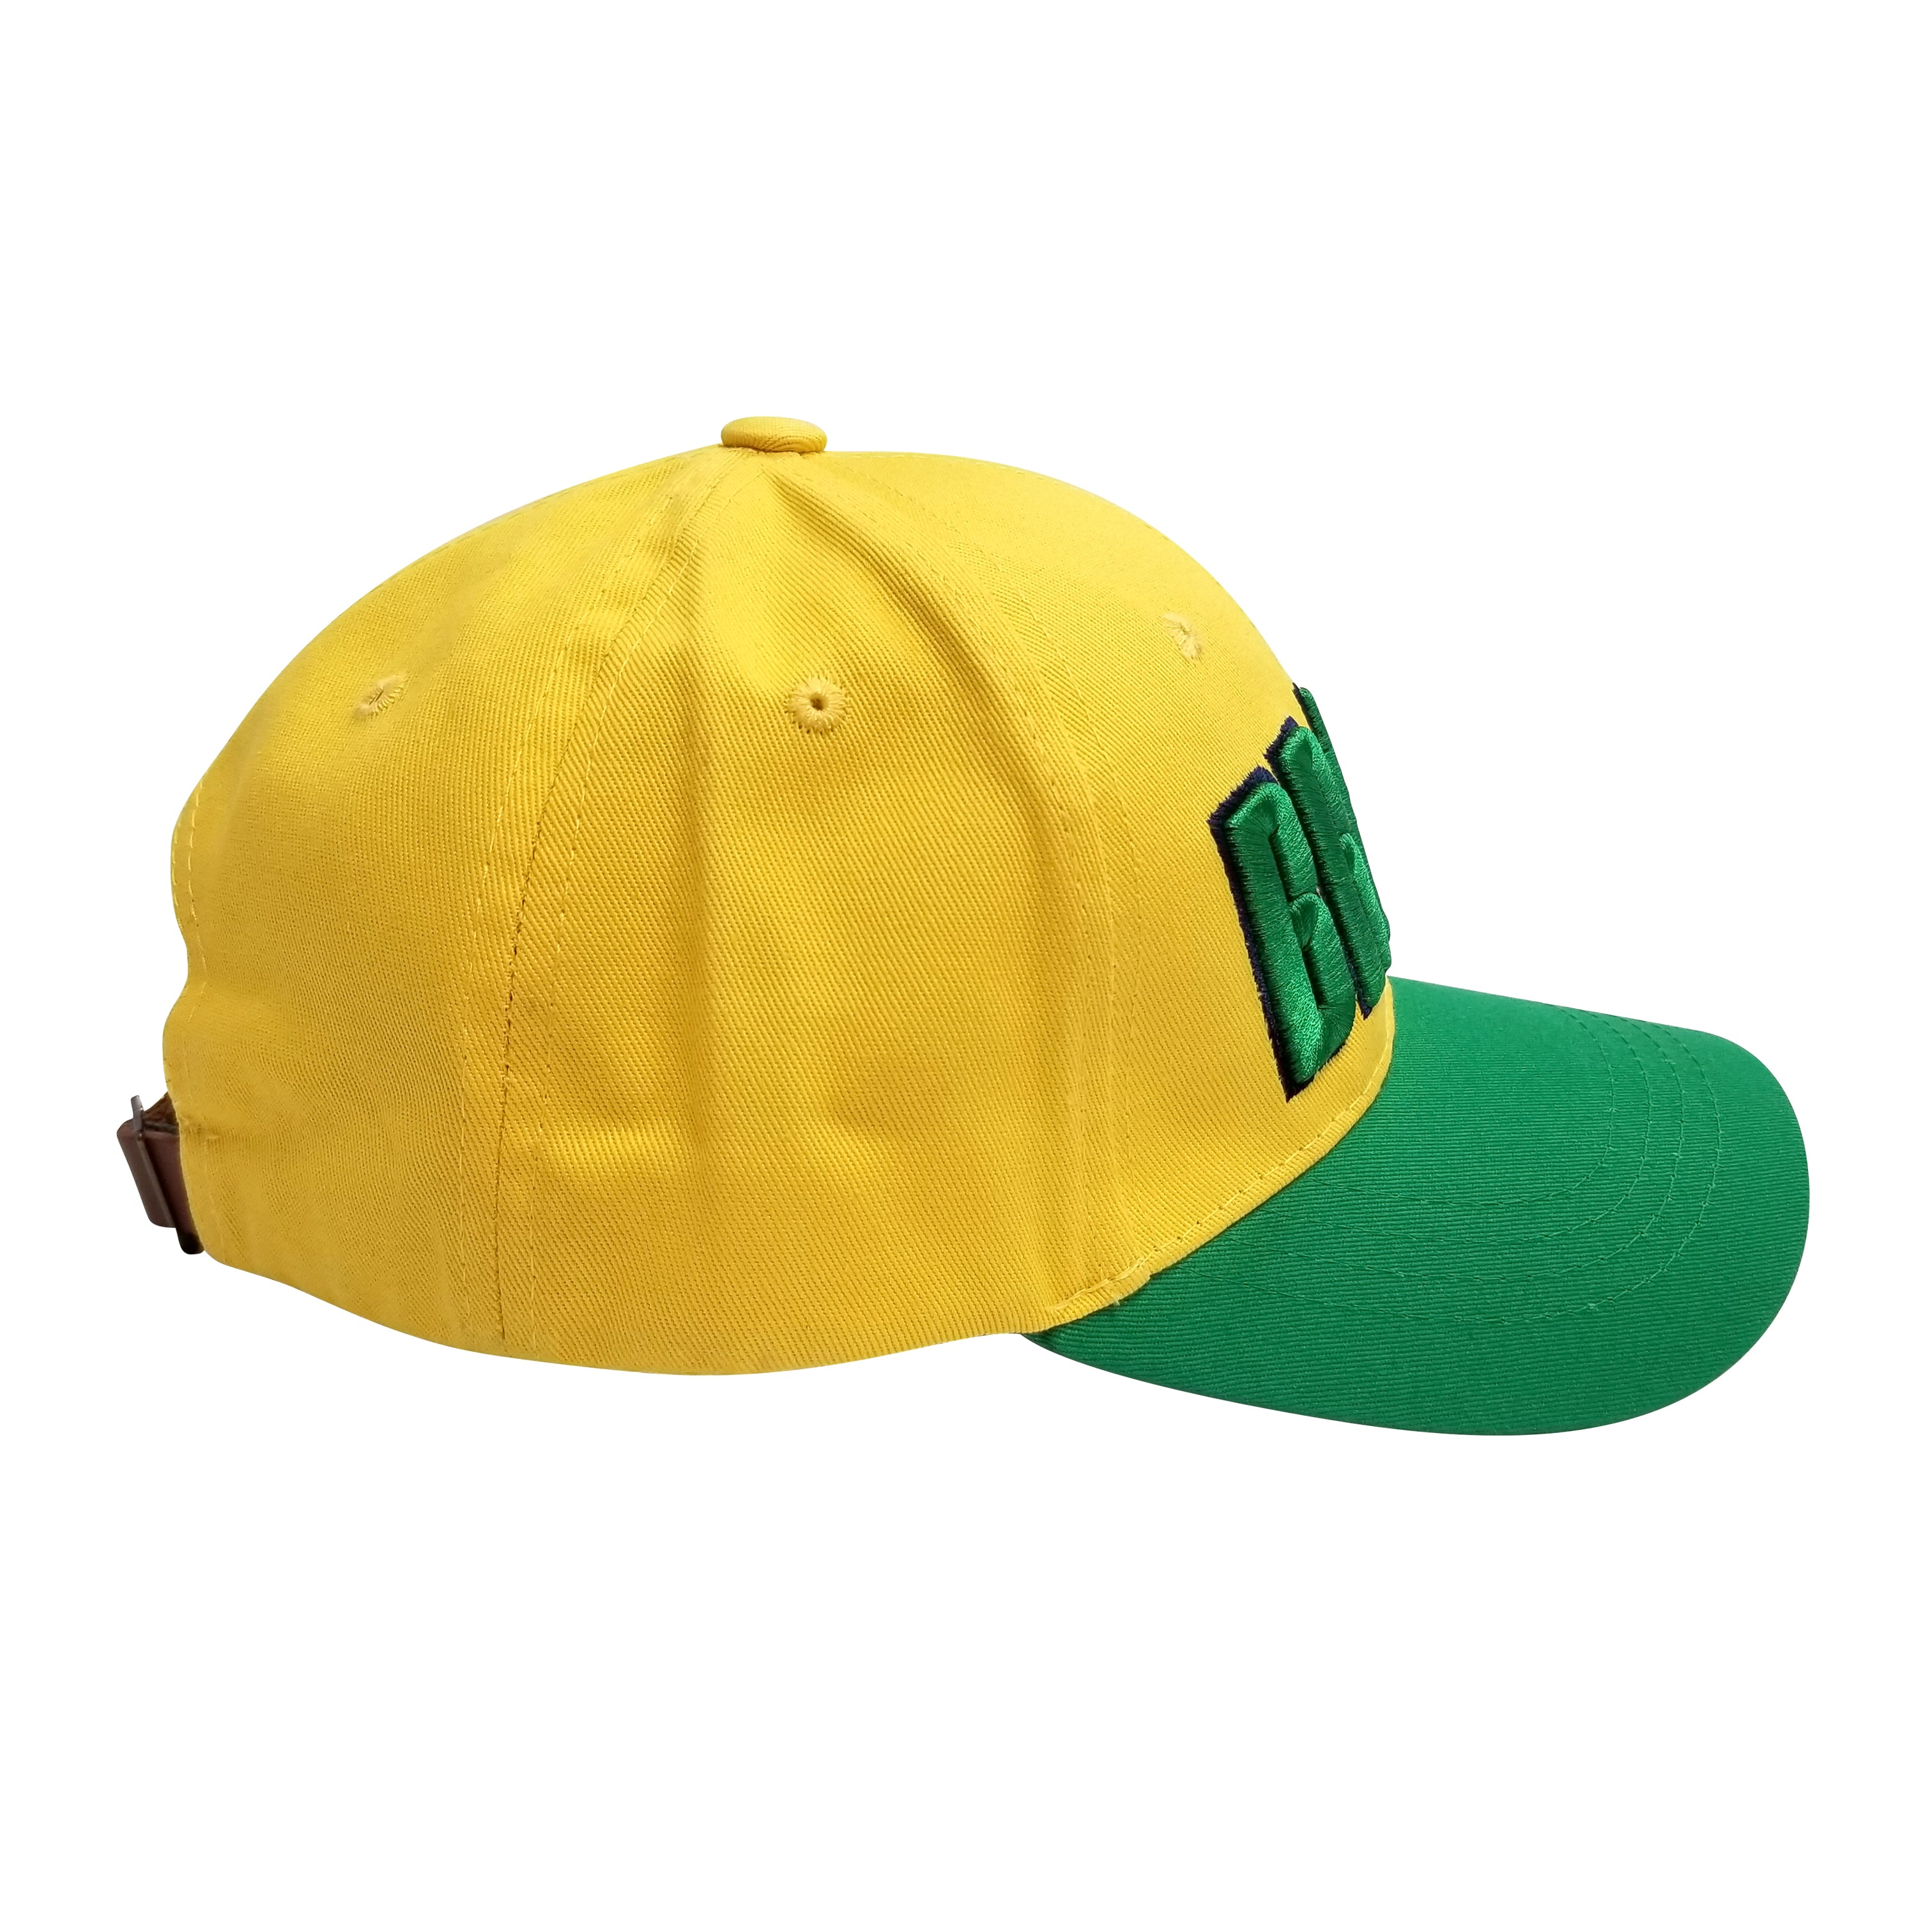 BRASIL 3D Embroidery 6 Panel Structured Cap